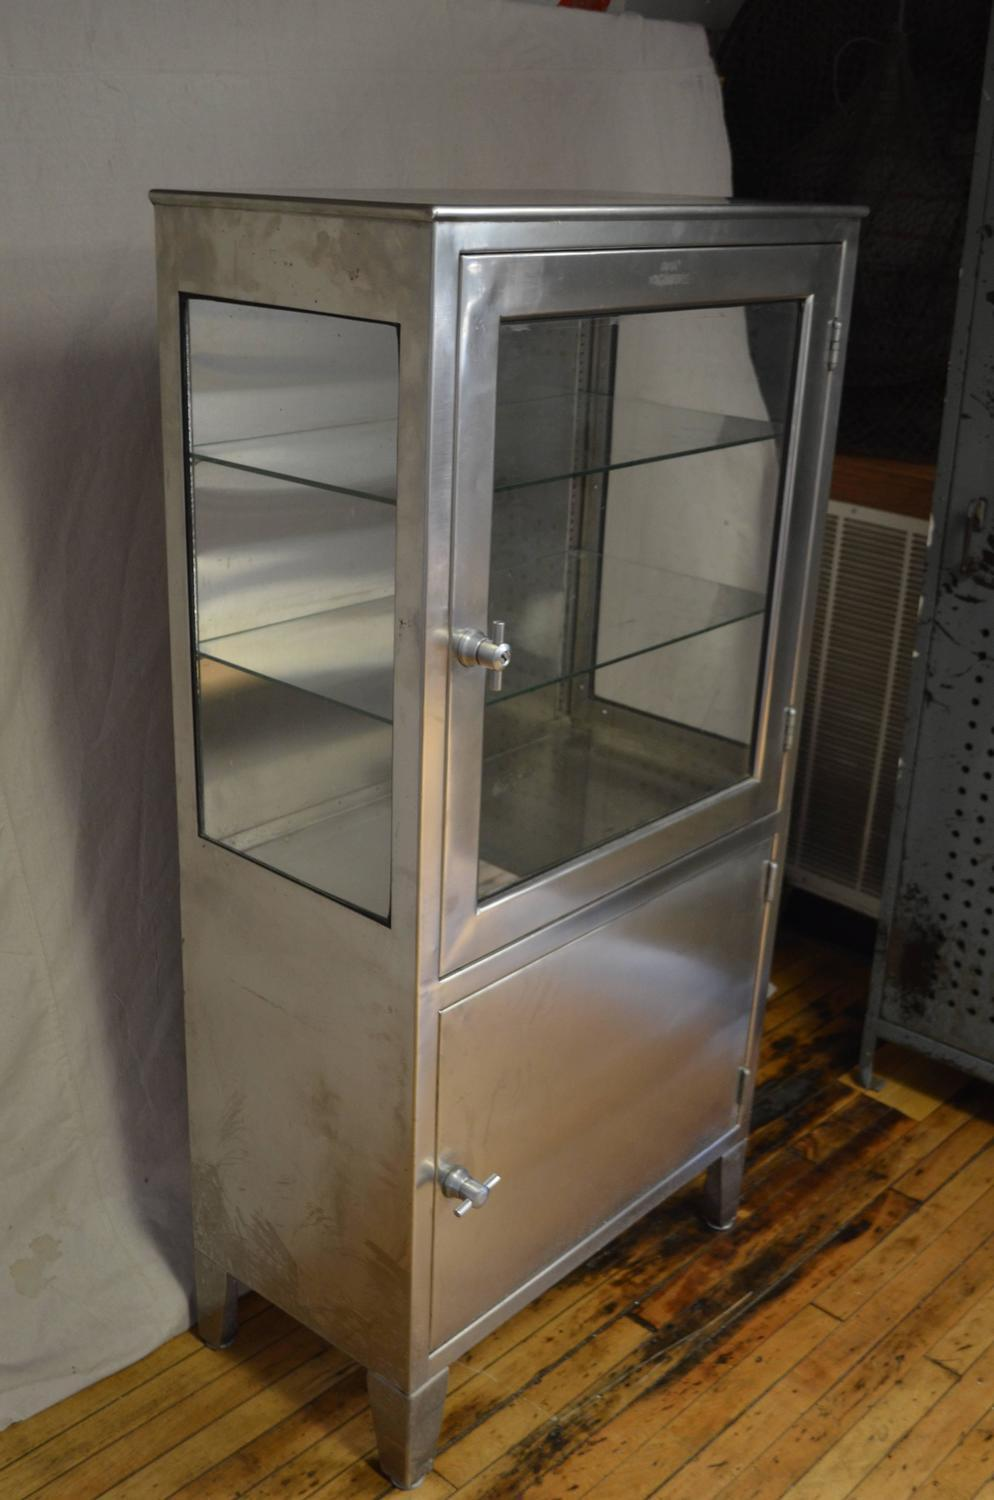 Stainless Steel Tall Kitchen Cabinet: Stainless Steel Dental Lab Cabinet